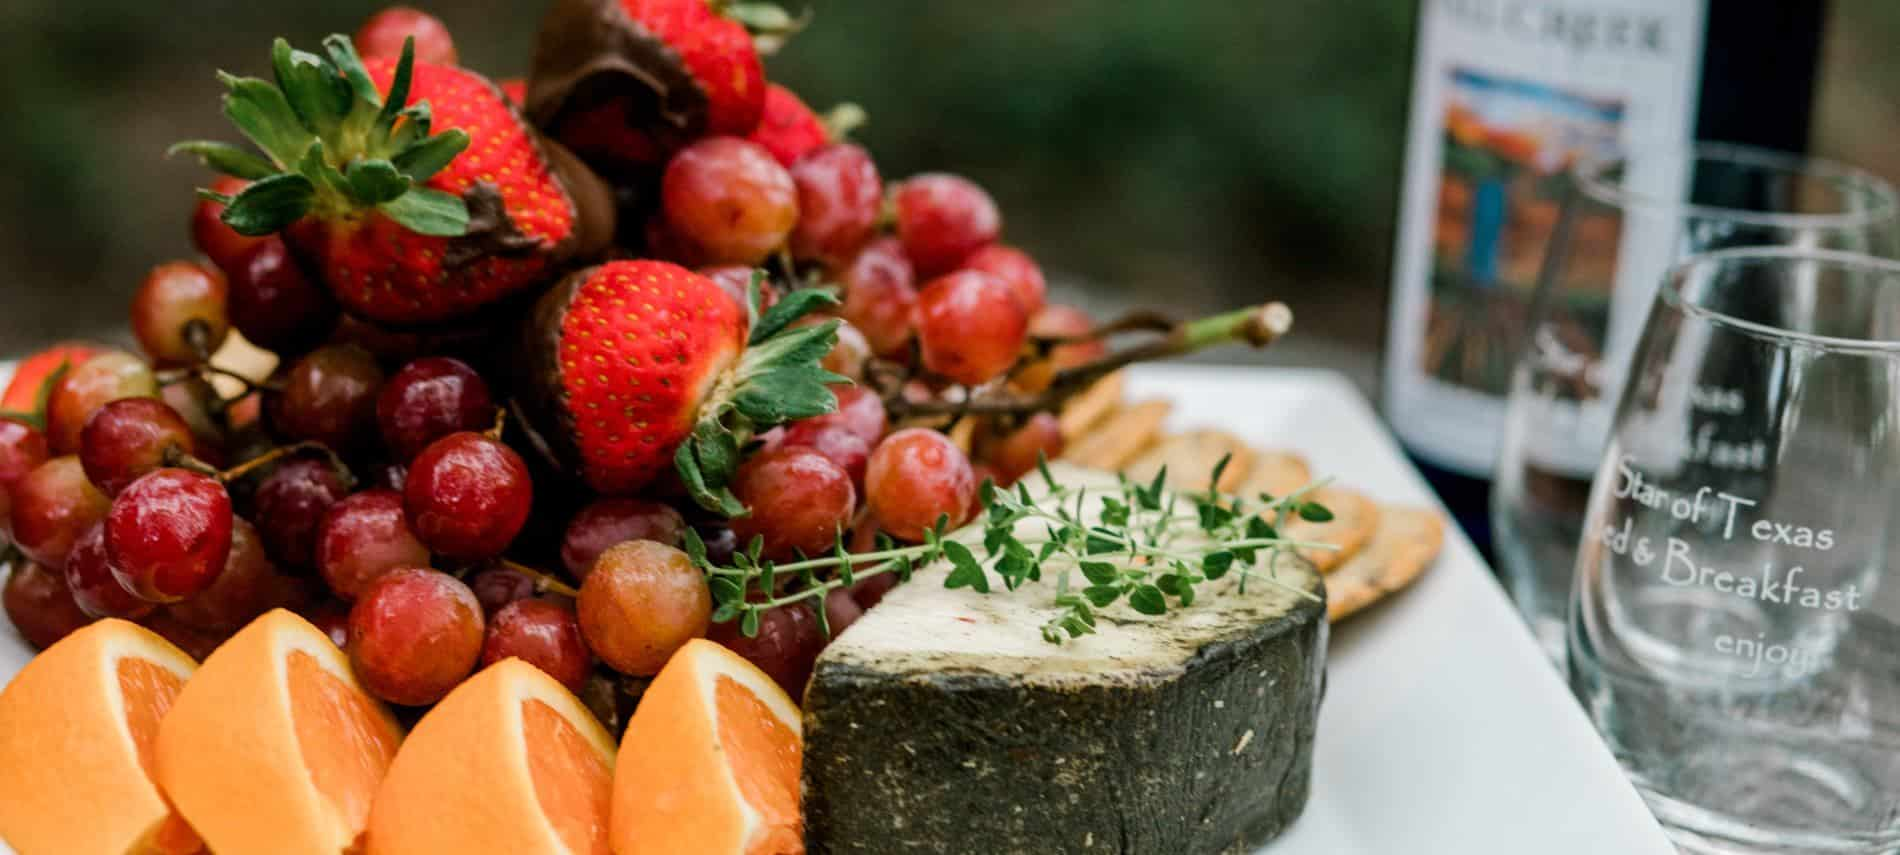 White serving tray piled with fresh grapefruit, strawberries, grapes and cheese next to a bottle of wine